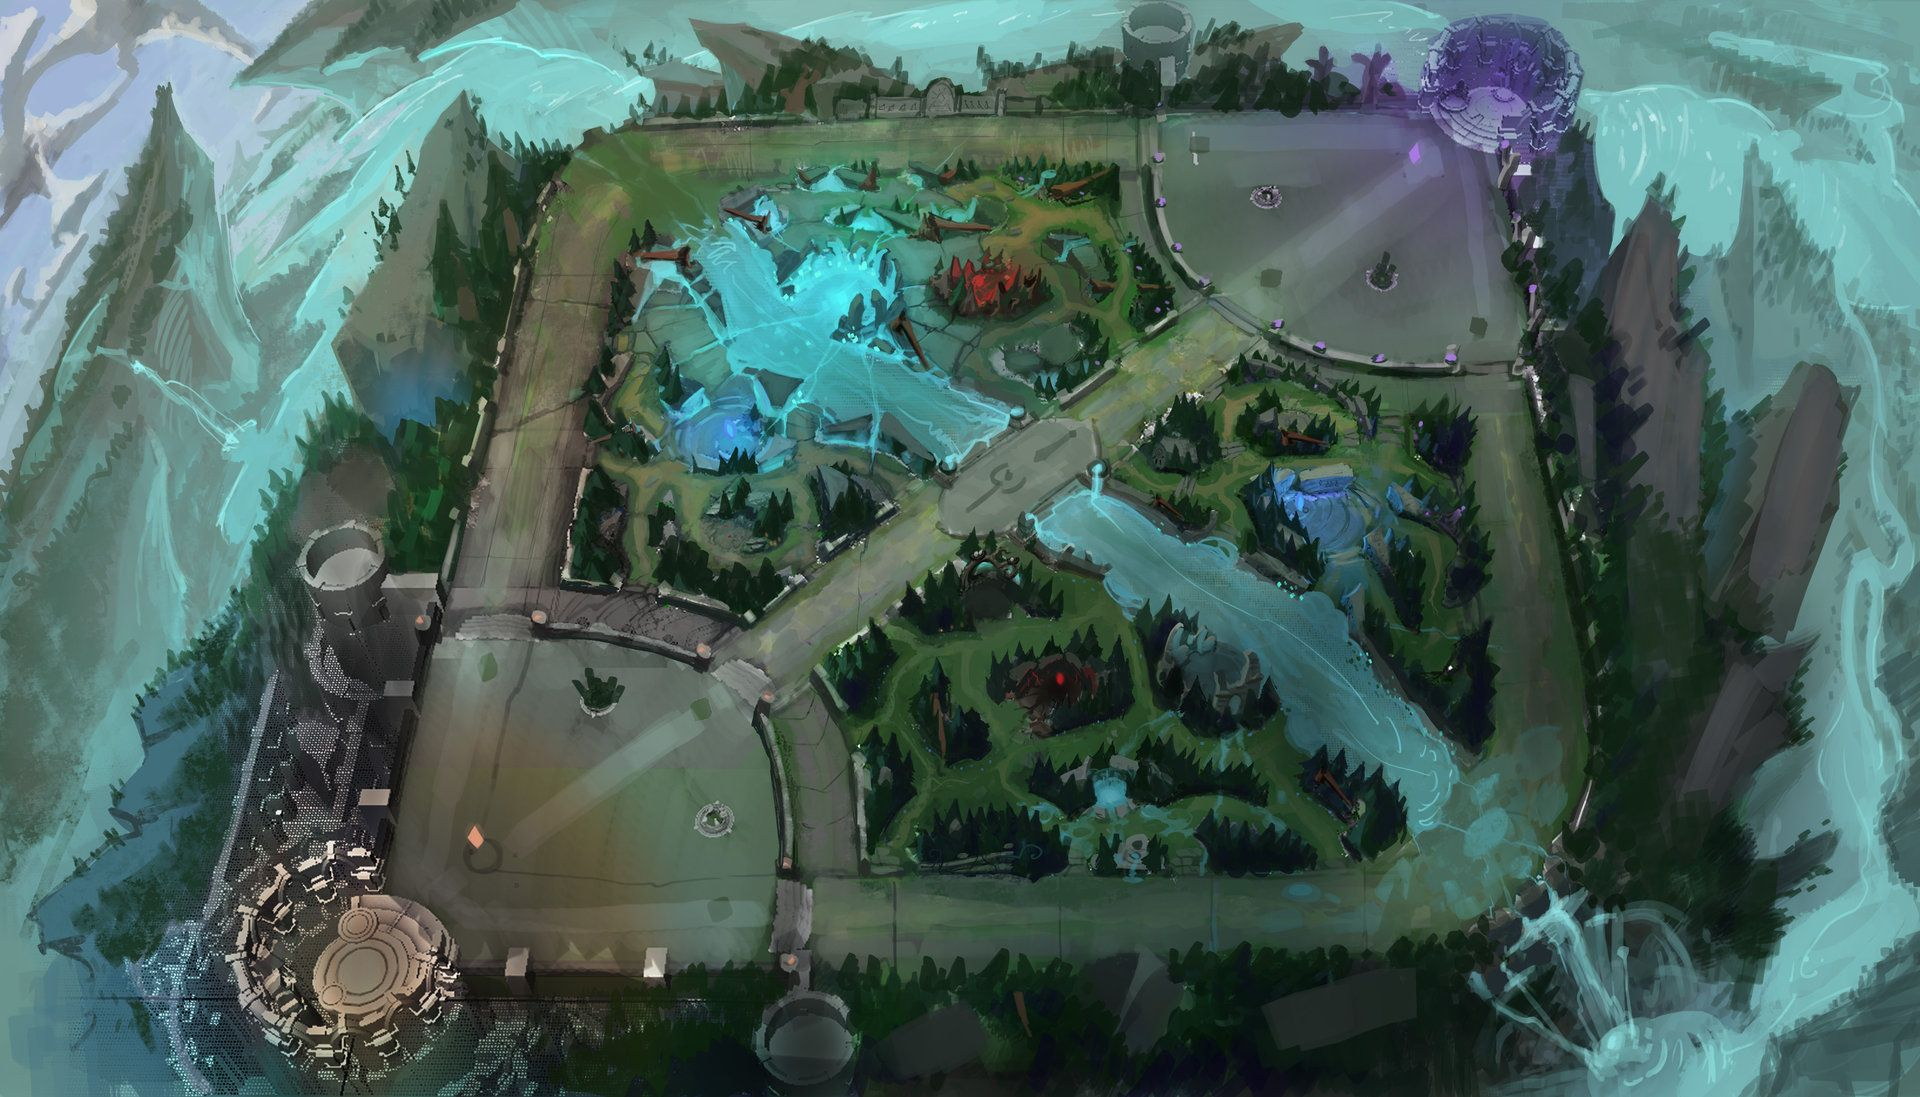 Pin by Patrick Lyons on PortfolioBoard | League of legends ...